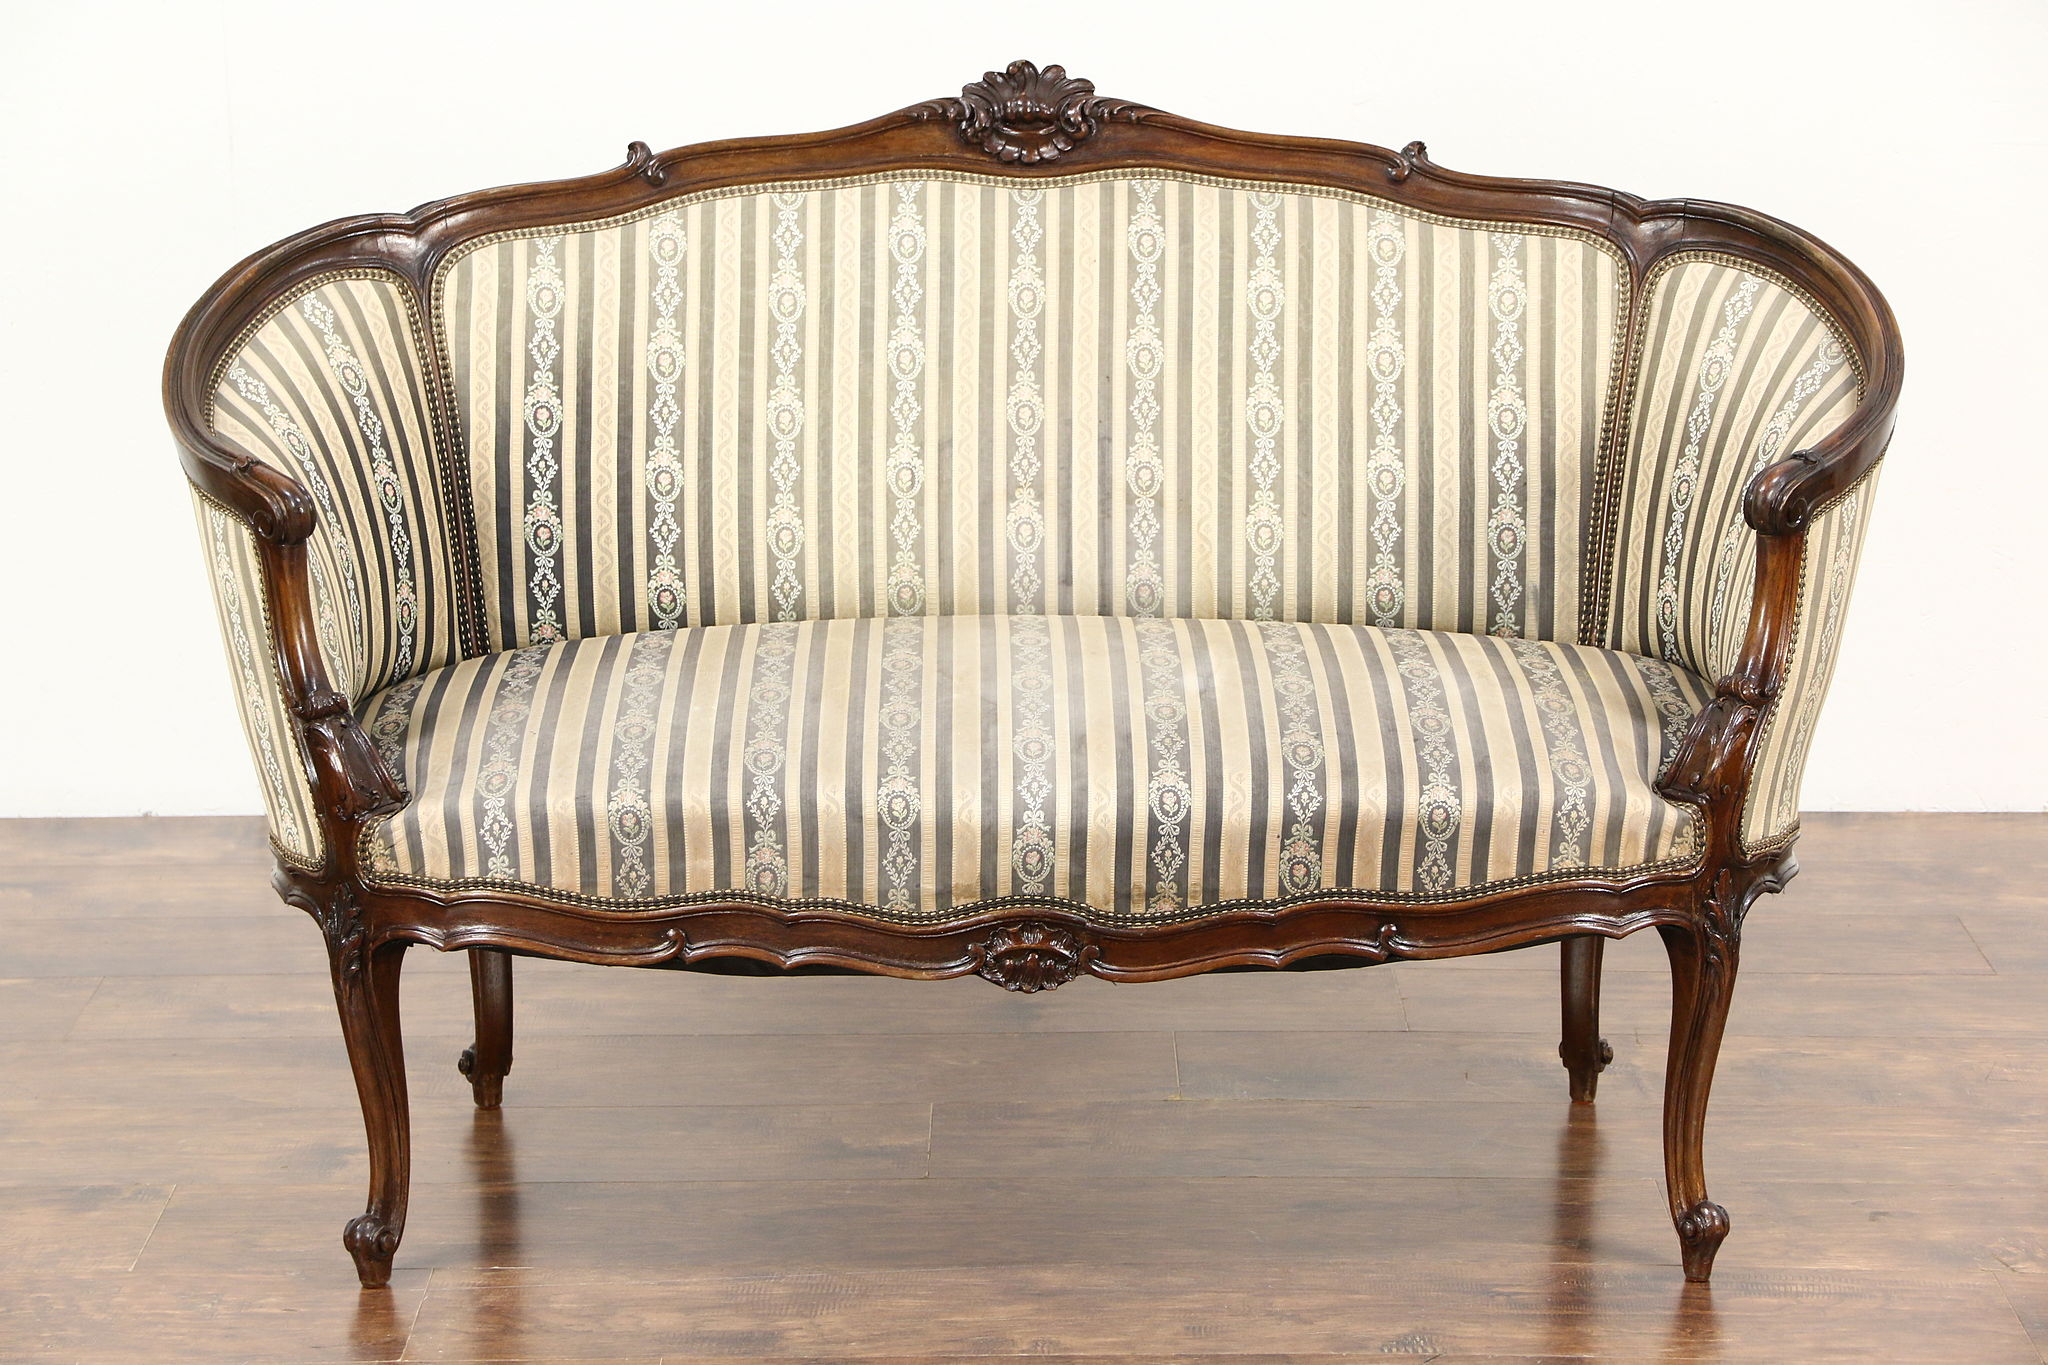 Sold French Louis Xiv Hand Carved Walnut 1920 Antique Salon Settee Or Loveseat Harp Gallery Antiques Furniture